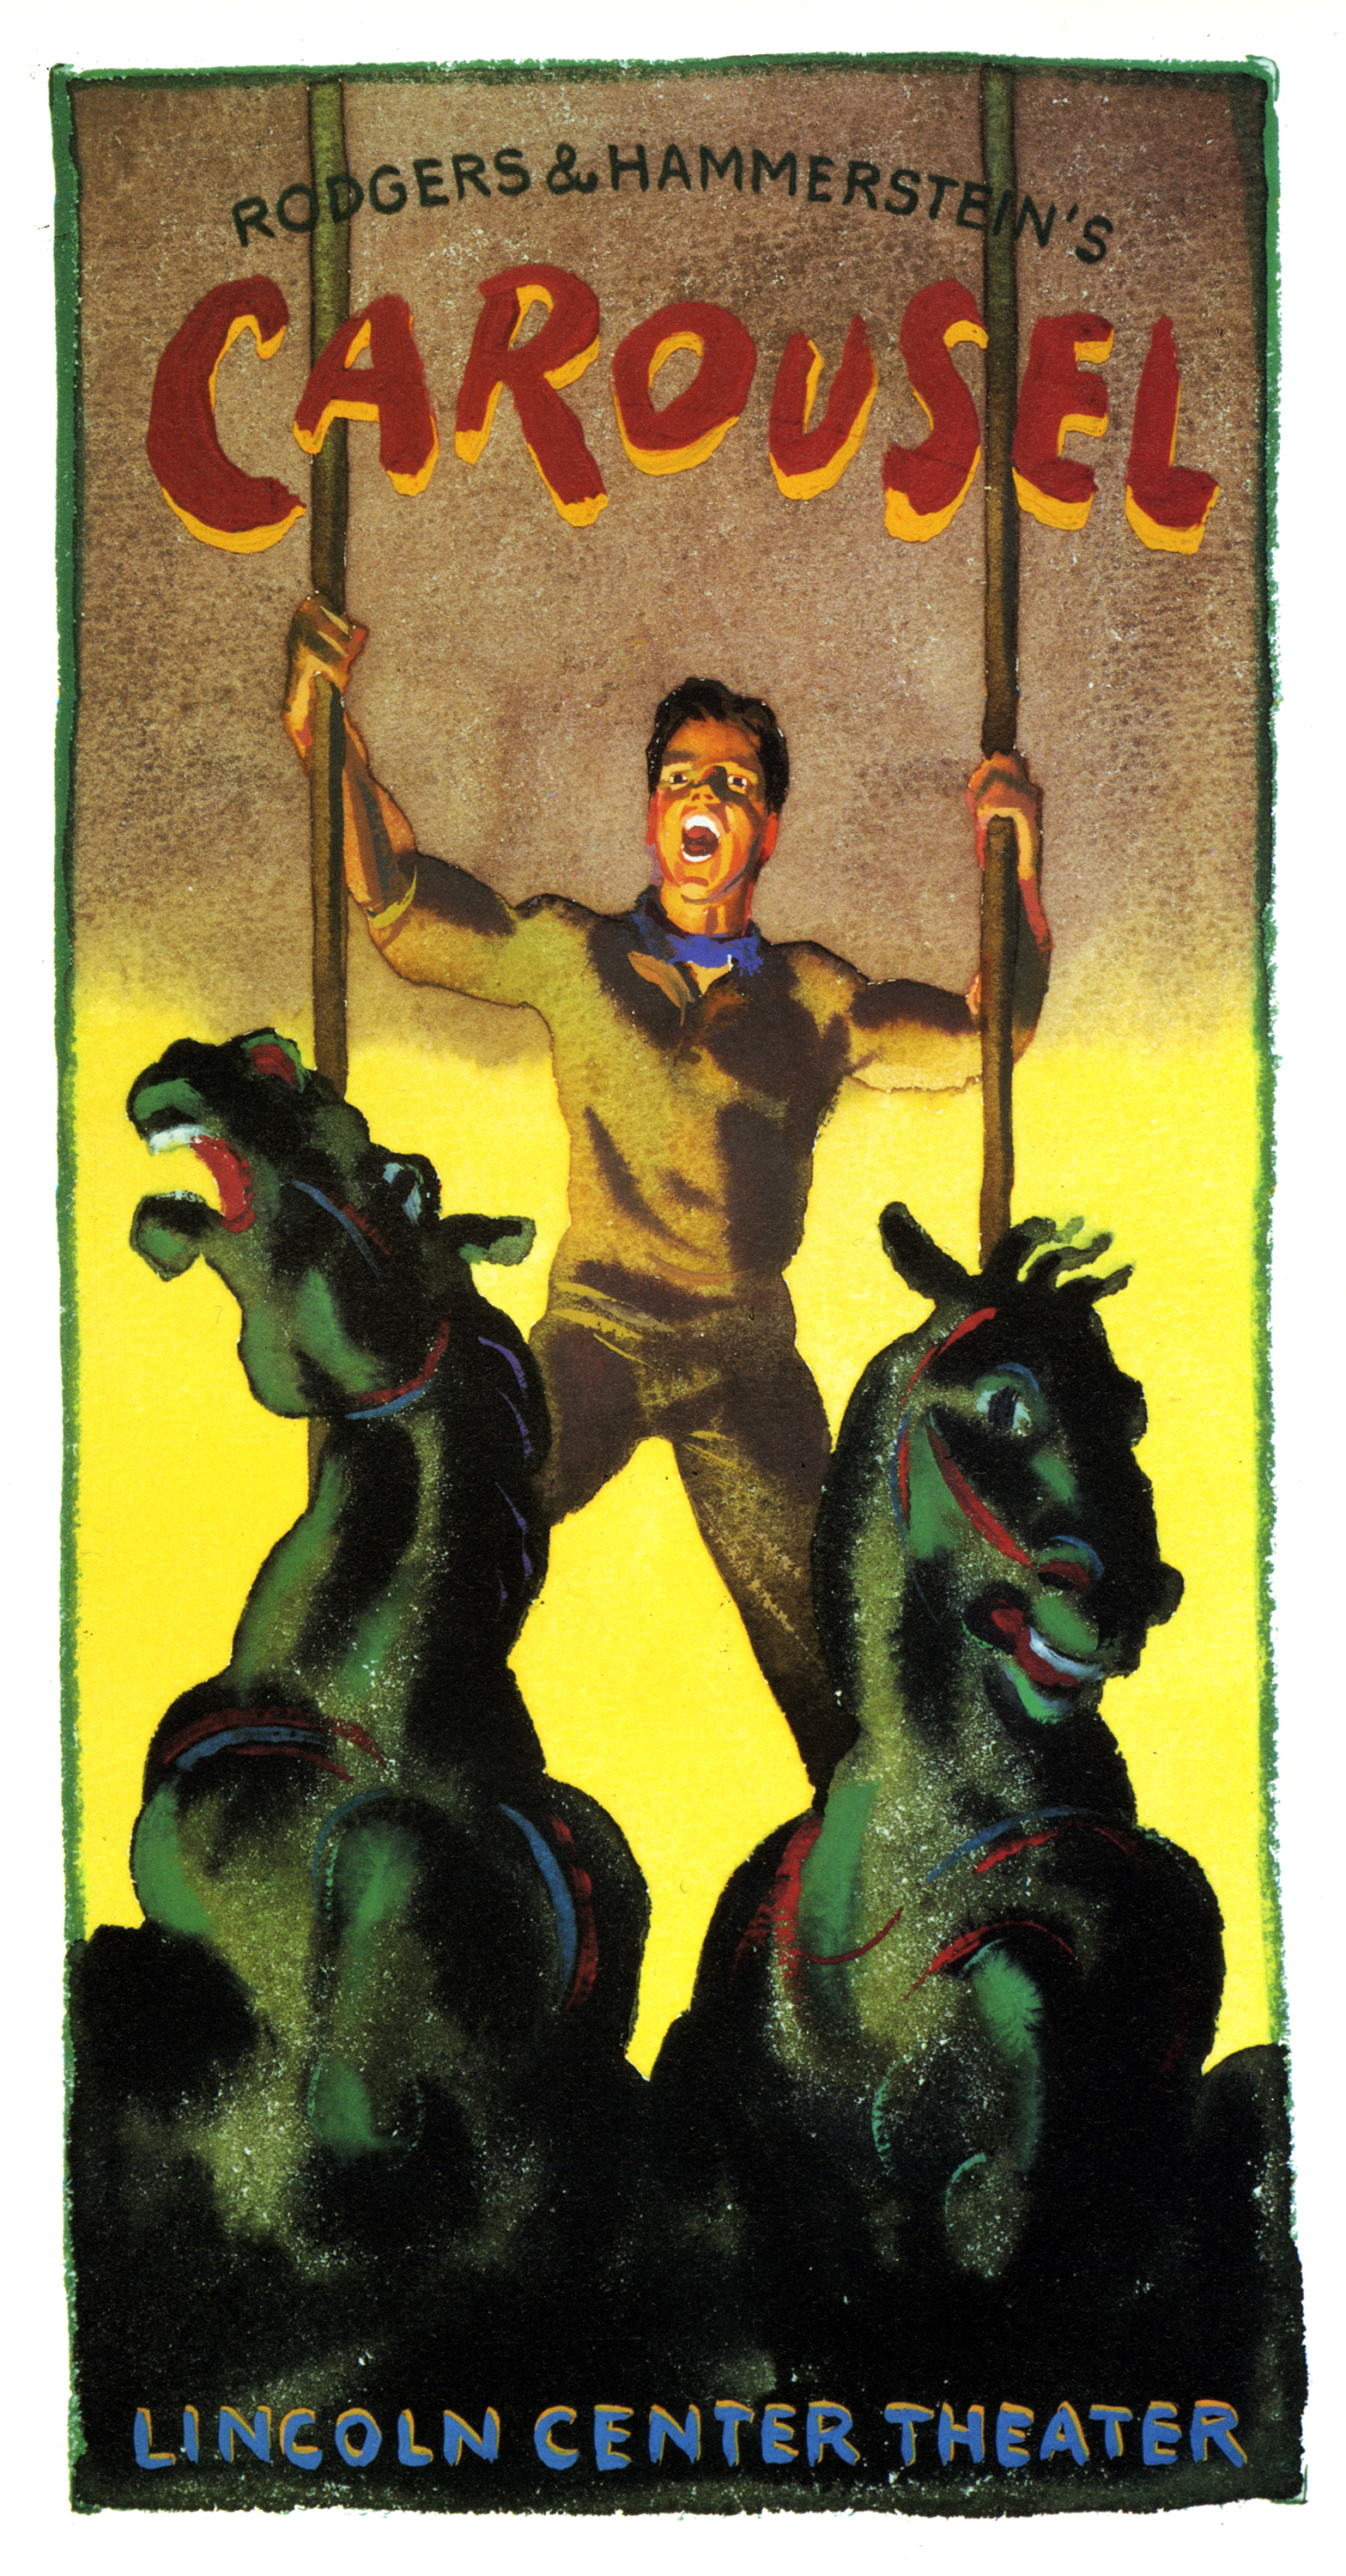 Illustration of a man singing, standing atop two green carousel horses, grasping their poles.